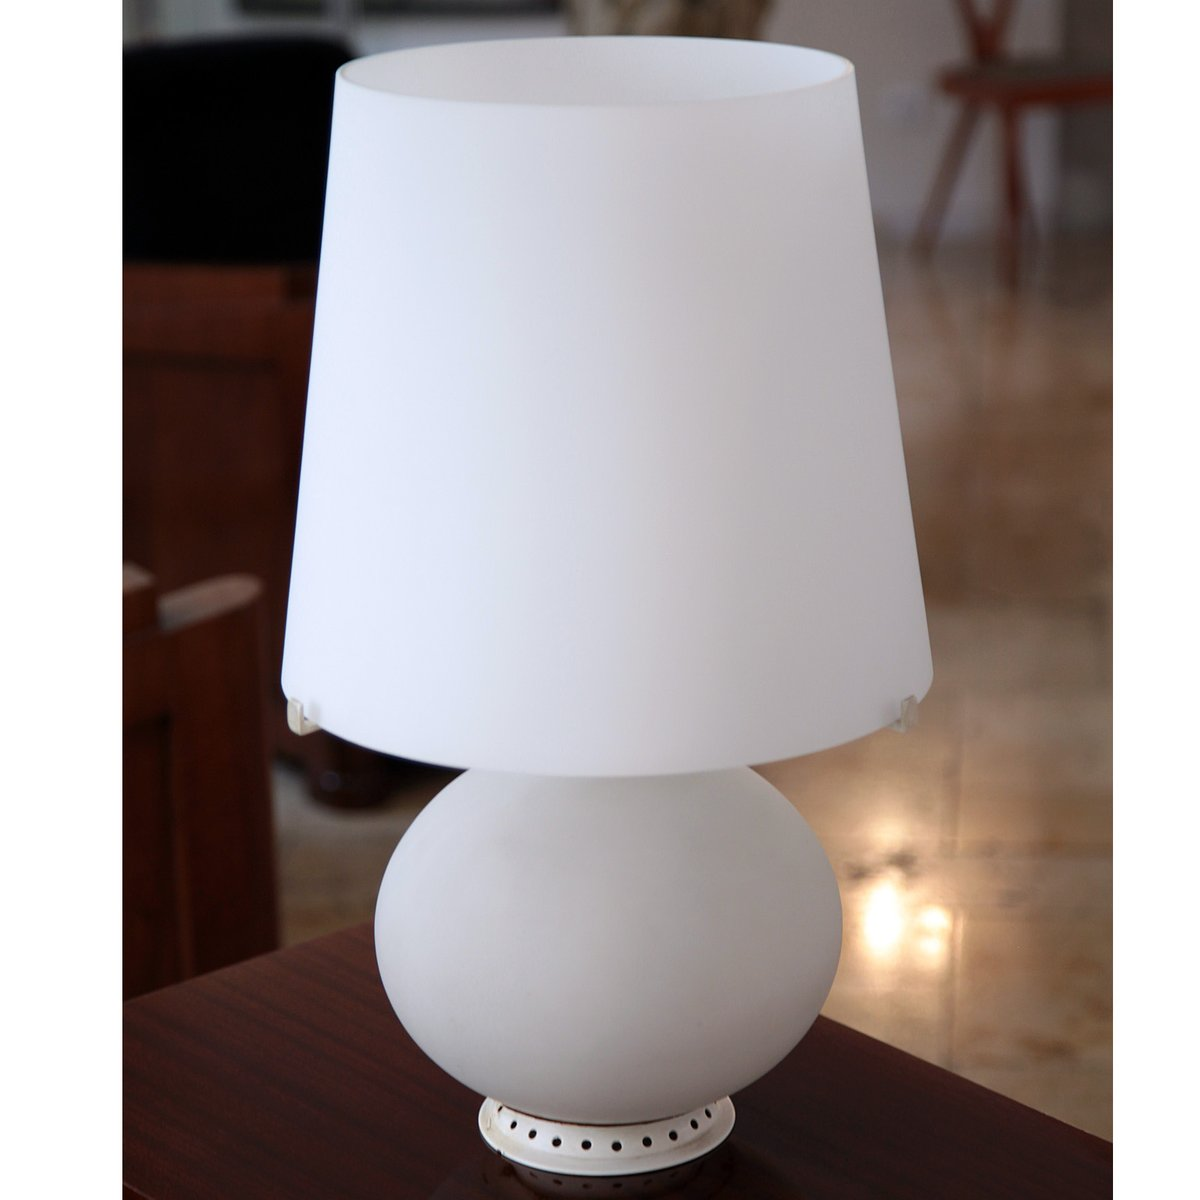 fontana 1853 table lamp by max ingrand for fontana arte for sale at pamono. Black Bedroom Furniture Sets. Home Design Ideas